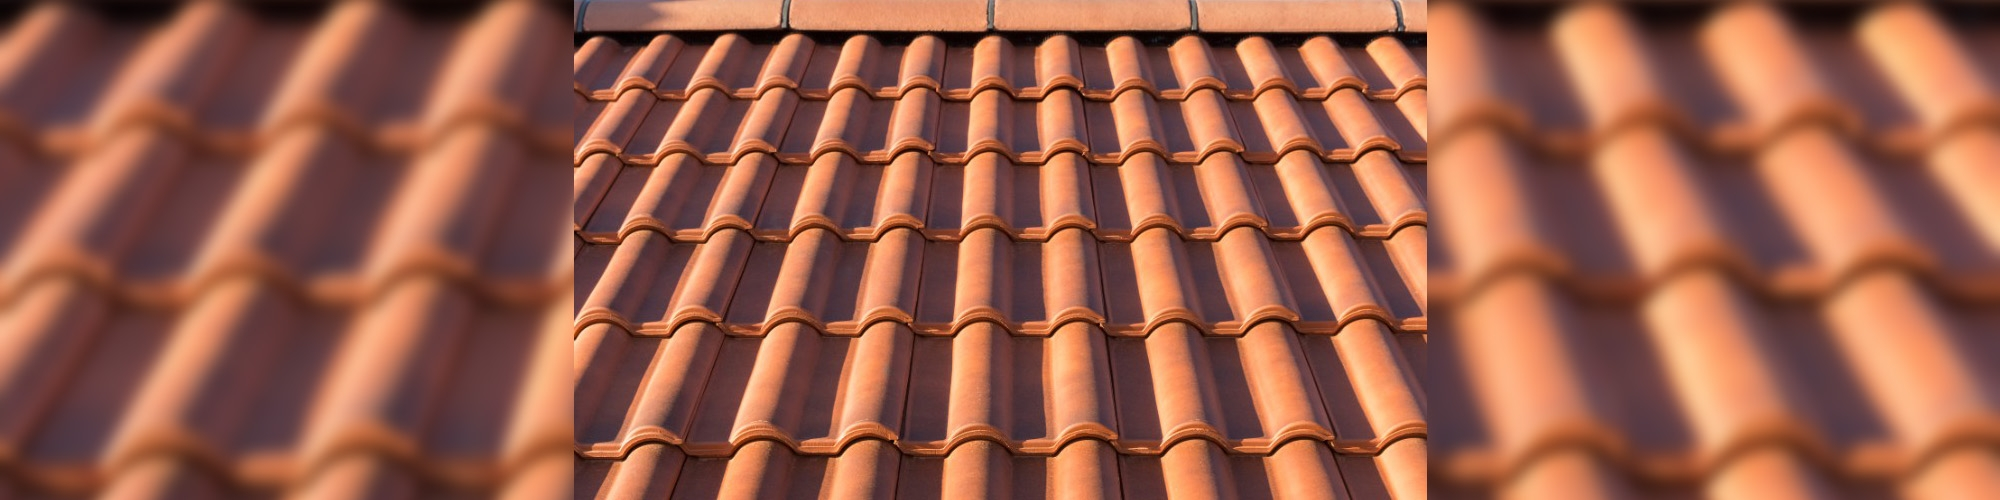 Clay roofing tiles, clay tiles shrewsbury, clay tiles chester, clay tiles wales